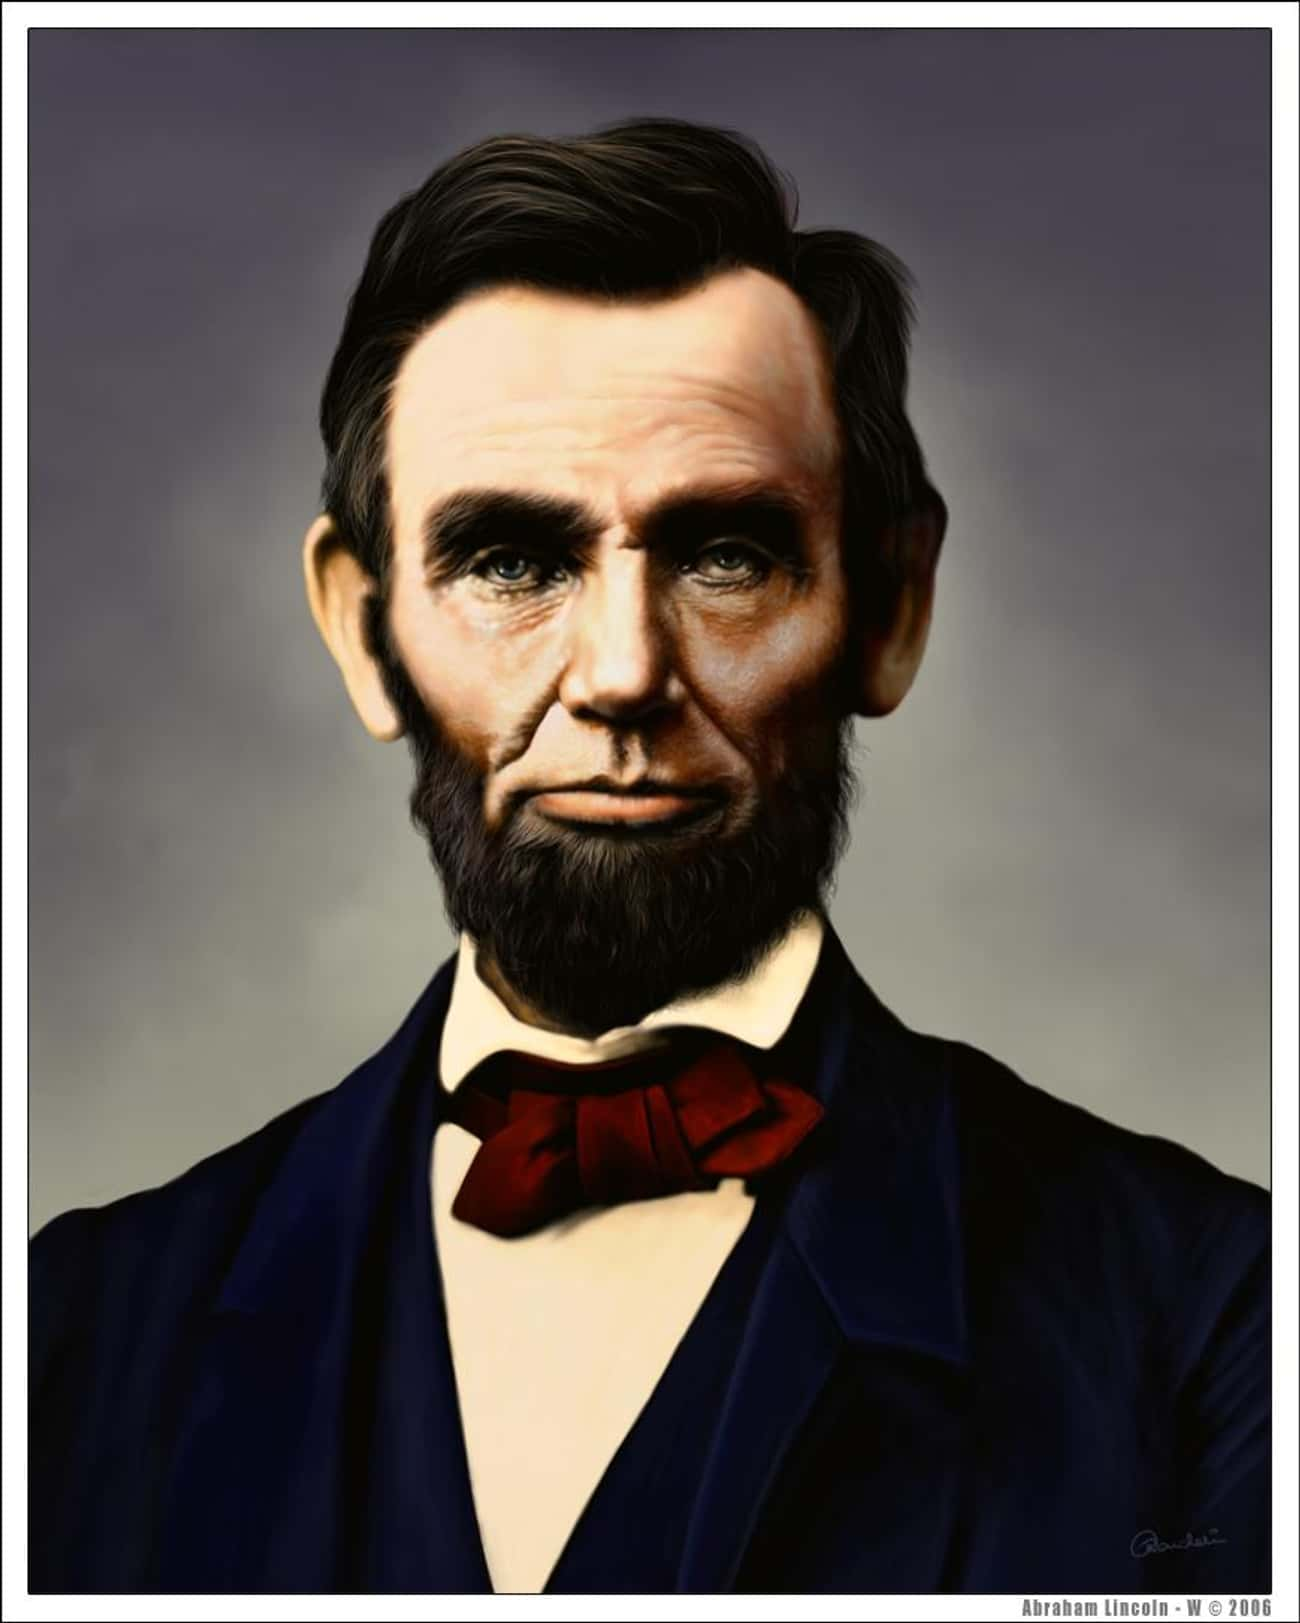 Abraham Lincoln Was An Aquariu is listed (or ranked) 2 on the list Here Are The Zodiac Signs For 16 Historical Figures - And What They Reveal About Their Personalities